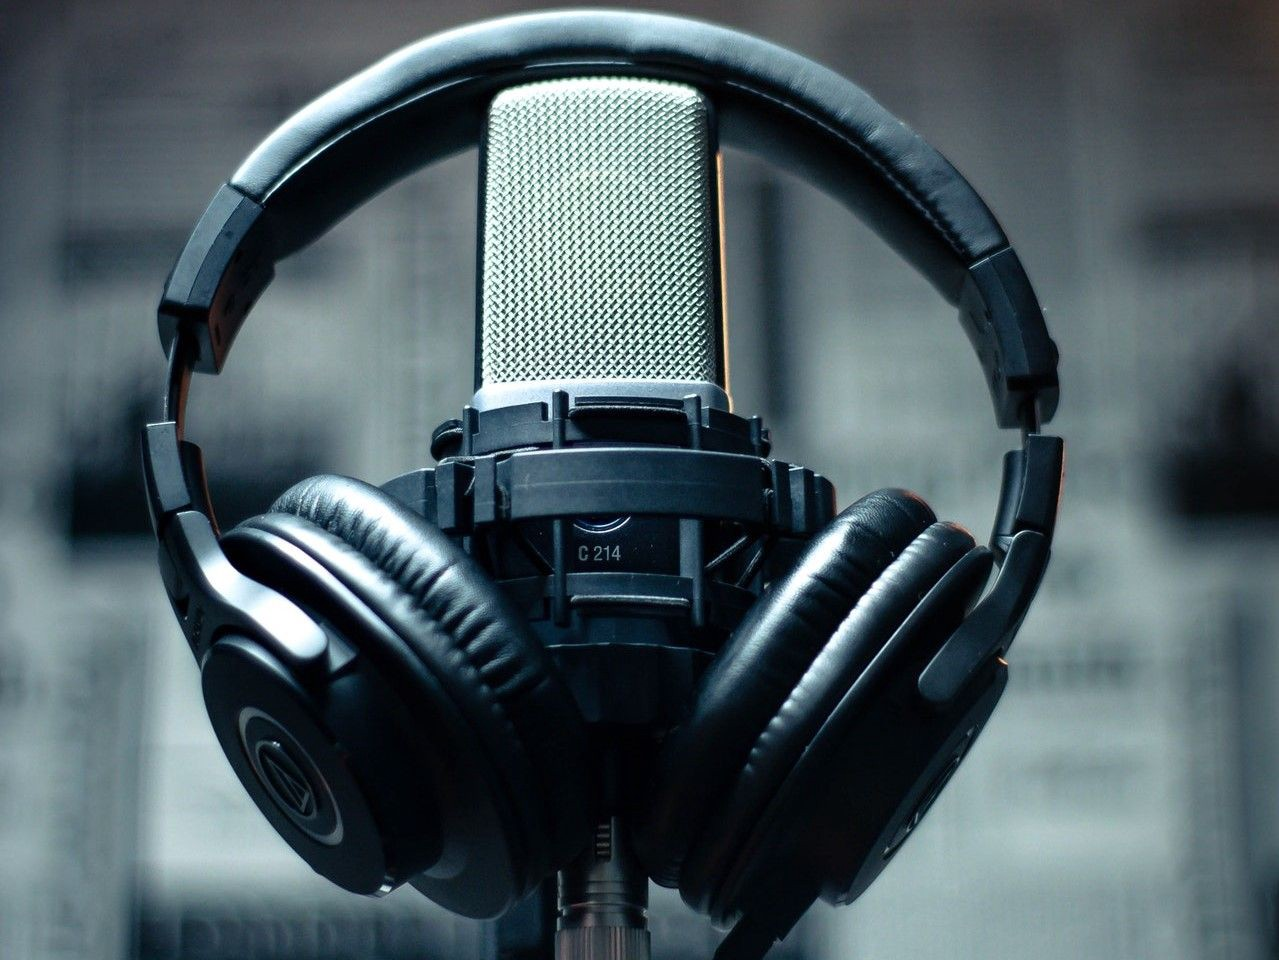 A photograph of headphones hung over a professional looking microphone, like you might expect for a recording studio or podcast